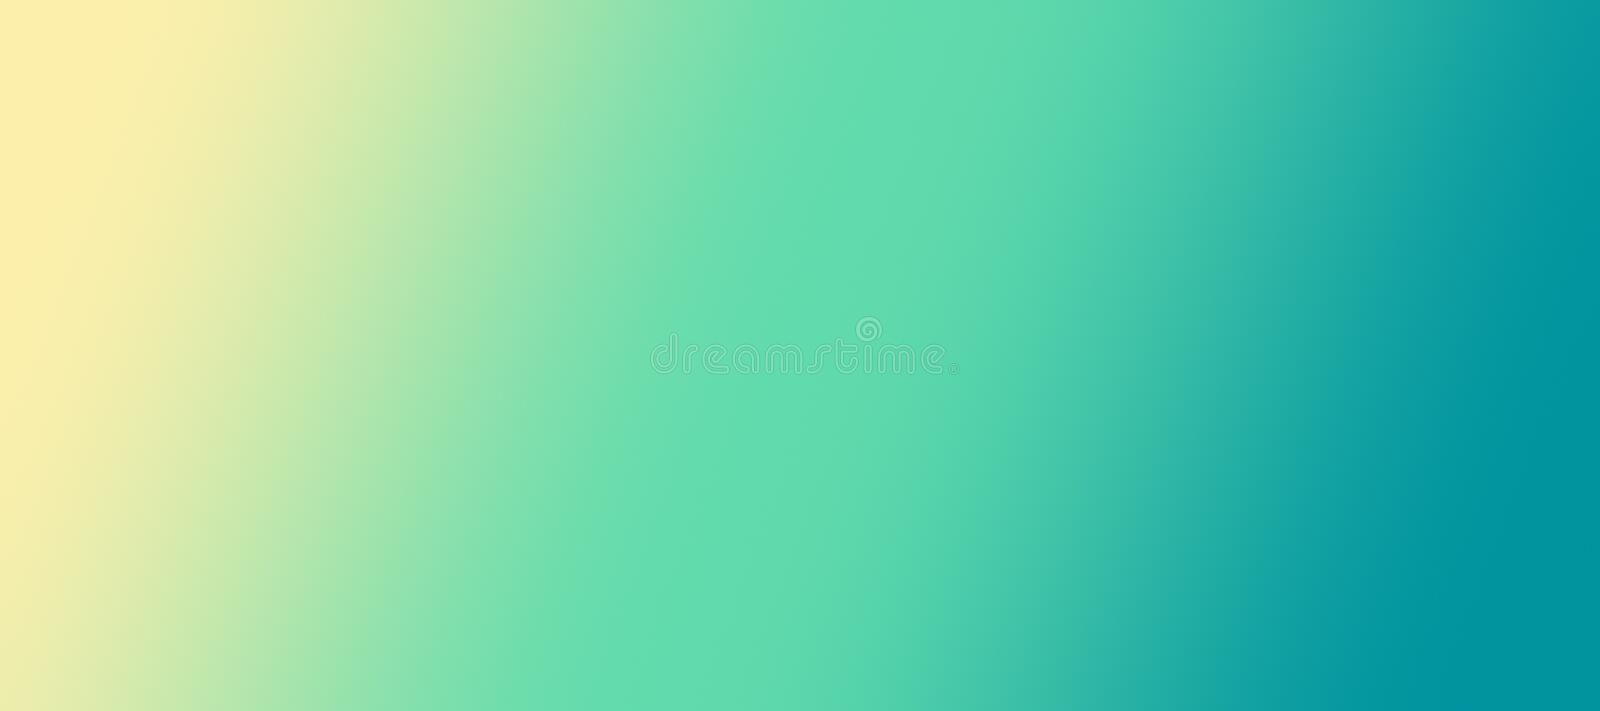 Soft smooth yellow green blue abstract blur diagonal gradient background illustration stock illustration